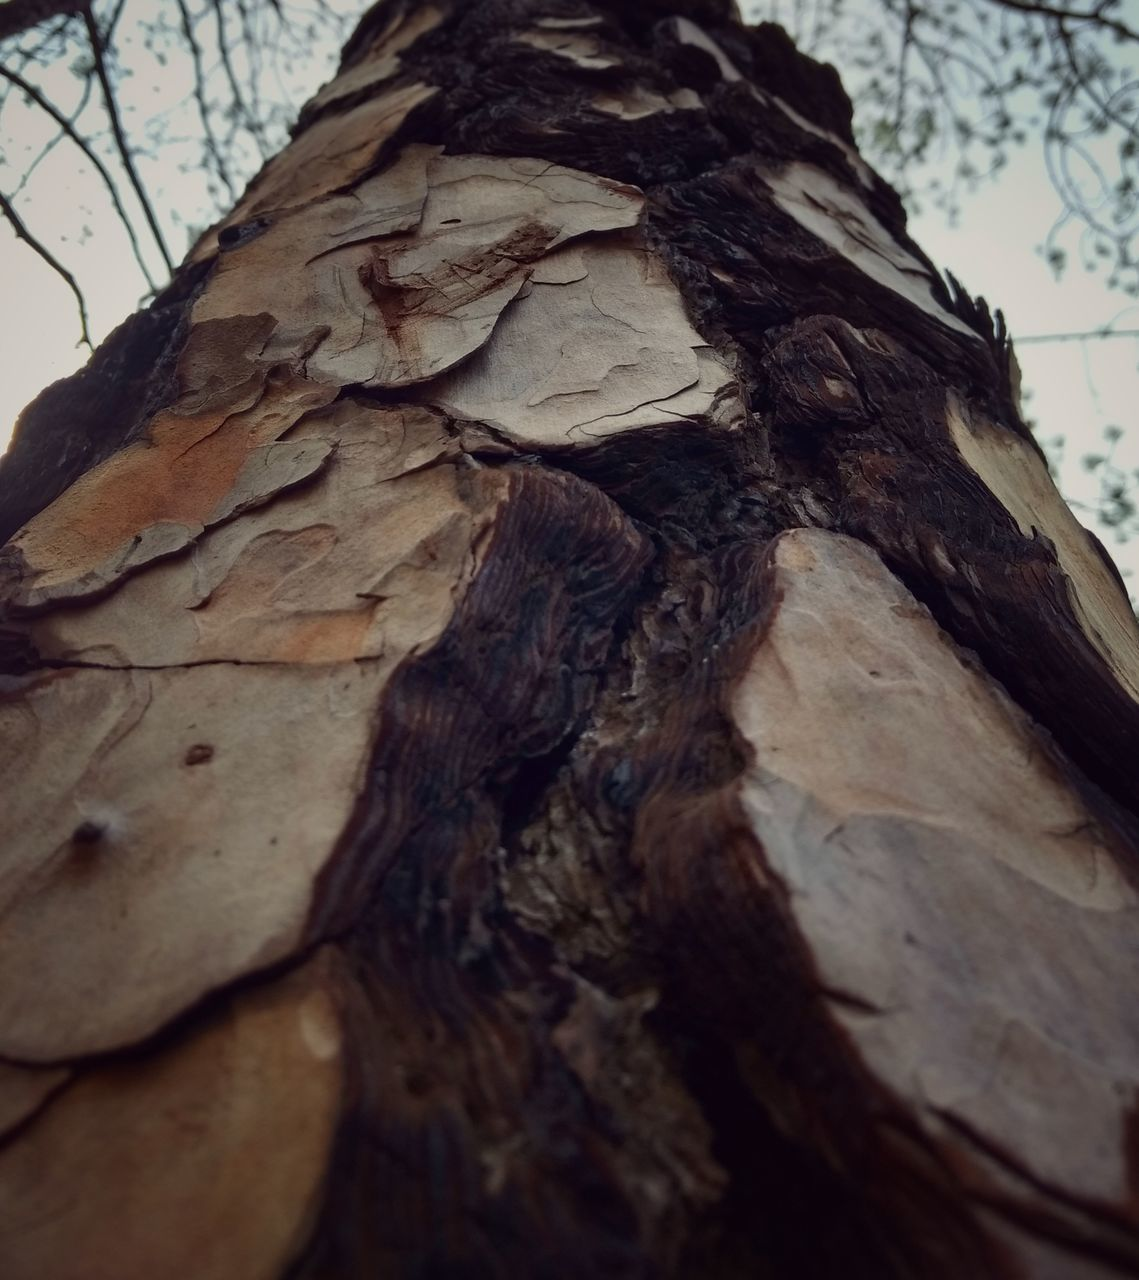 tree trunk, tree, bark, nature, textured, no people, day, close-up, wood - material, outdoors, branch, growth, beauty in nature, leaf, forest, low angle view, dead tree, sky